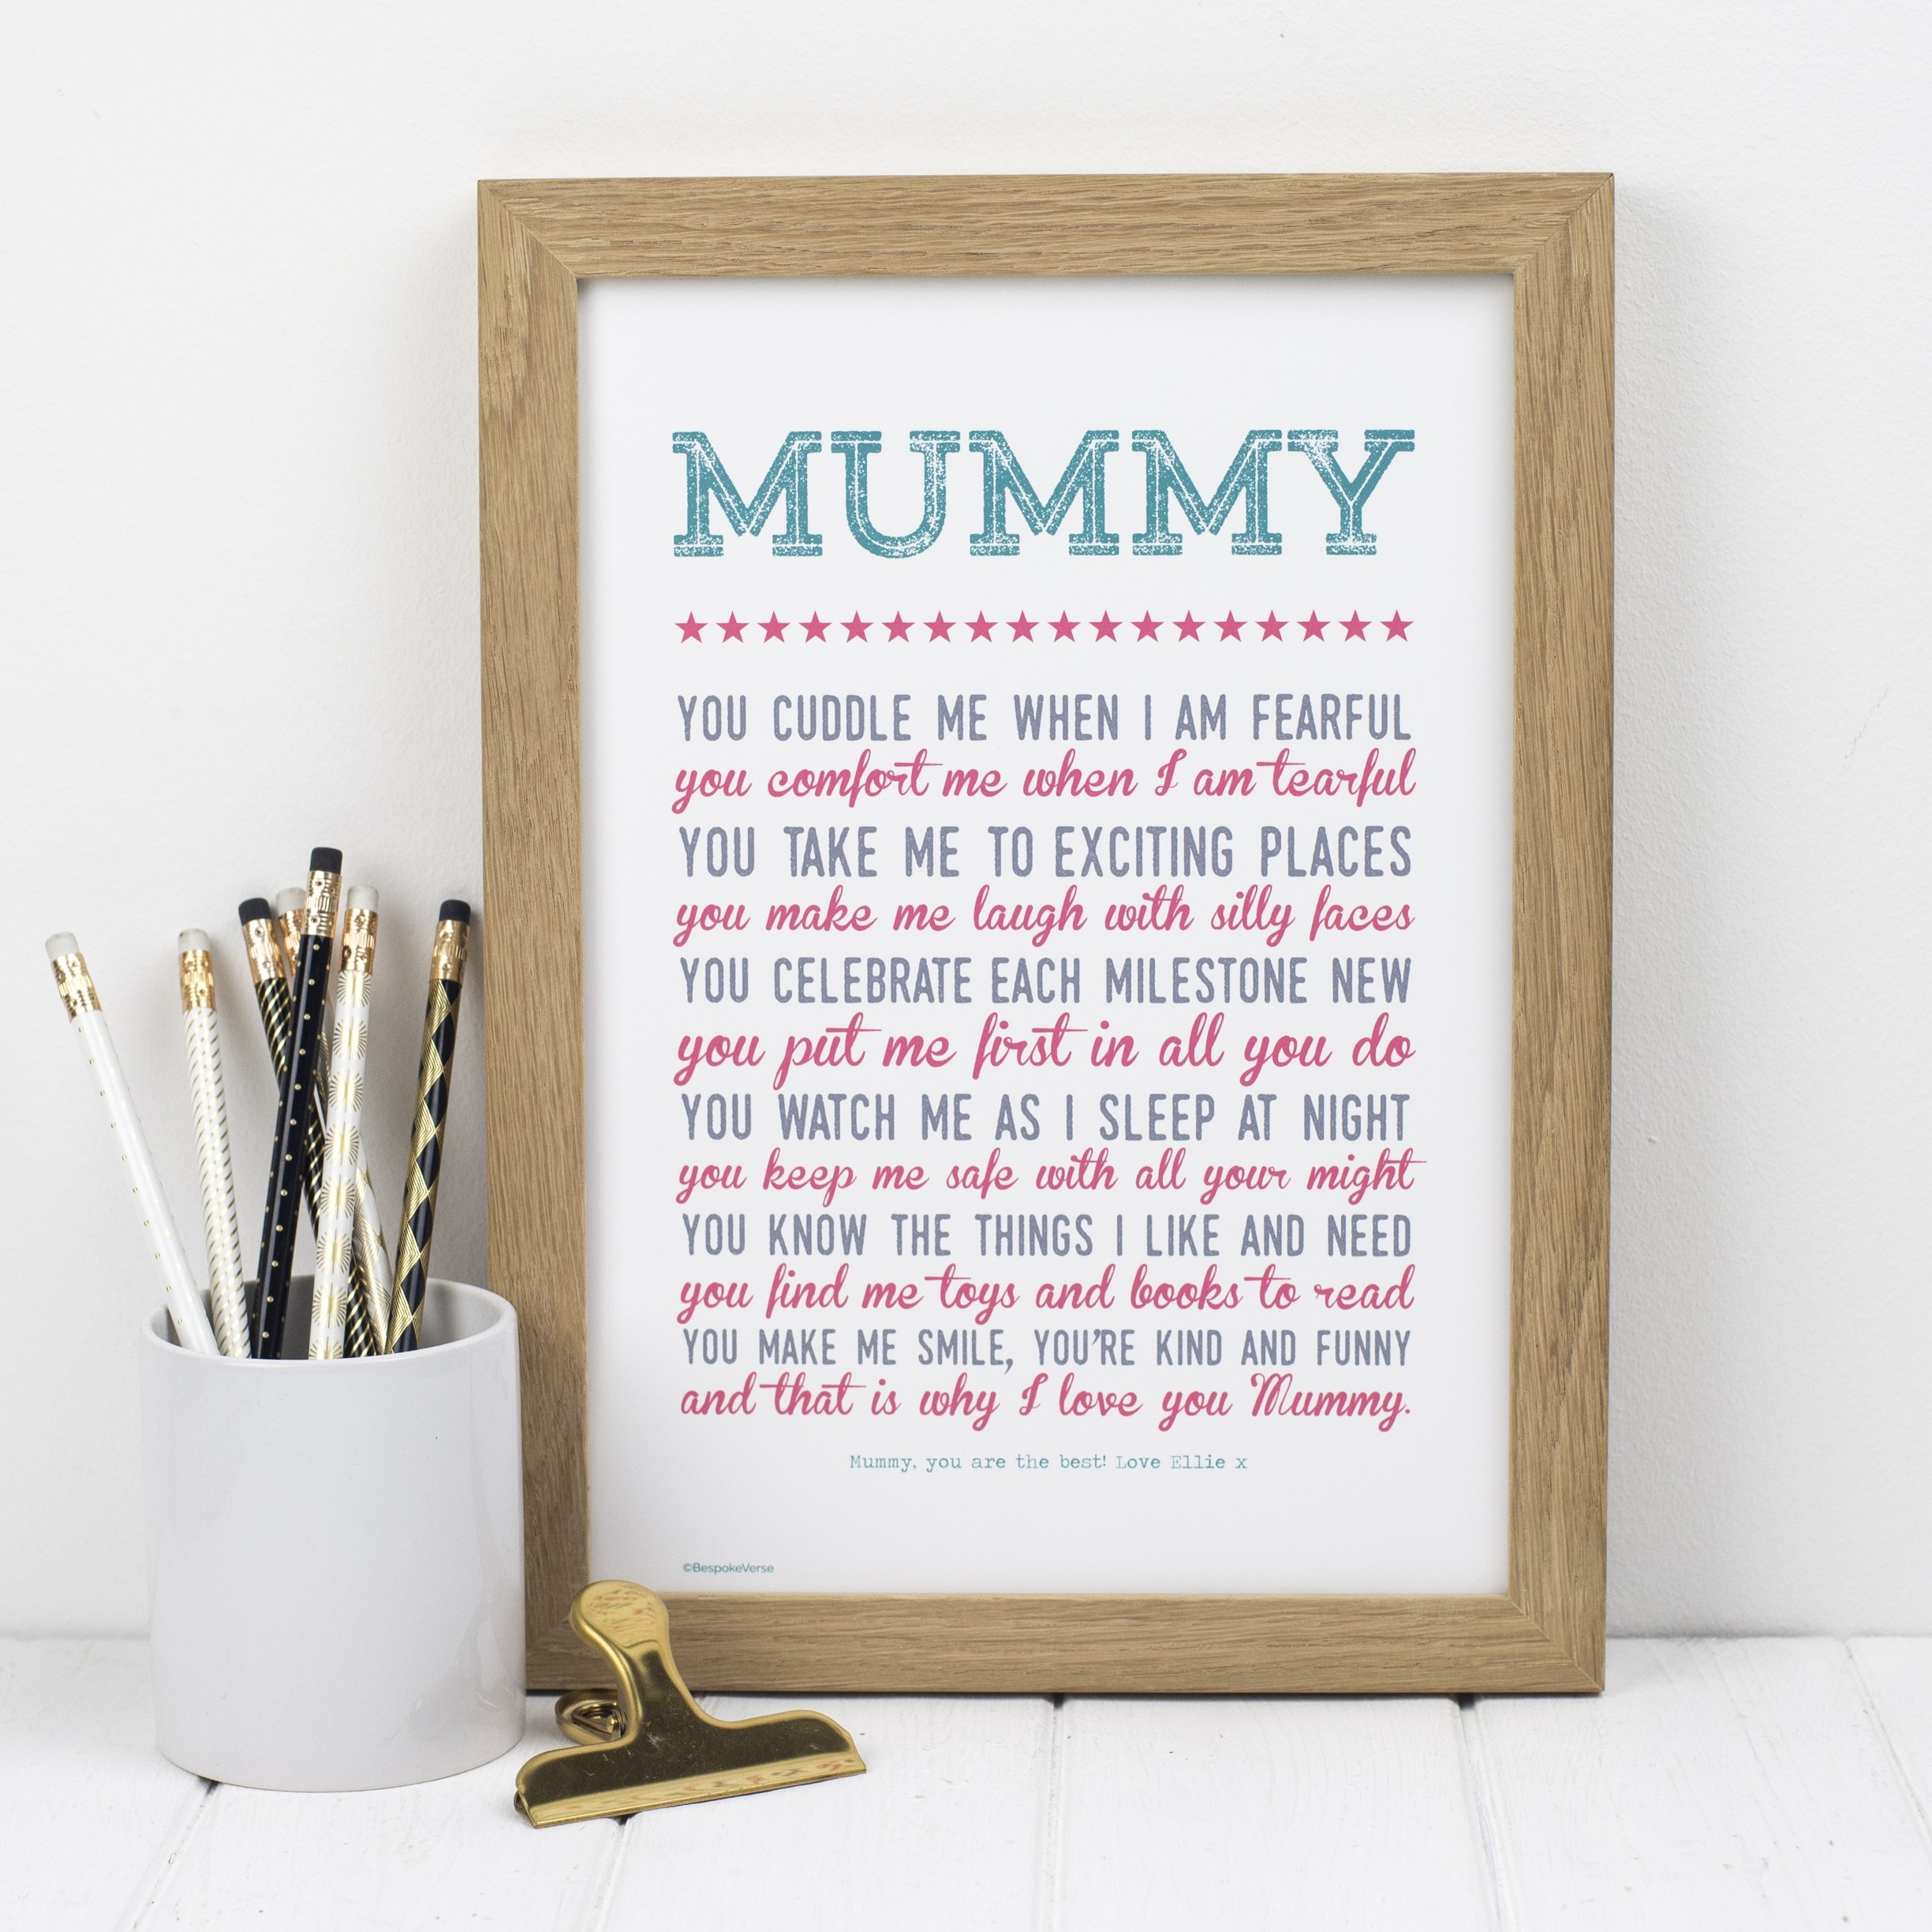 Why I Love You Mummy Print